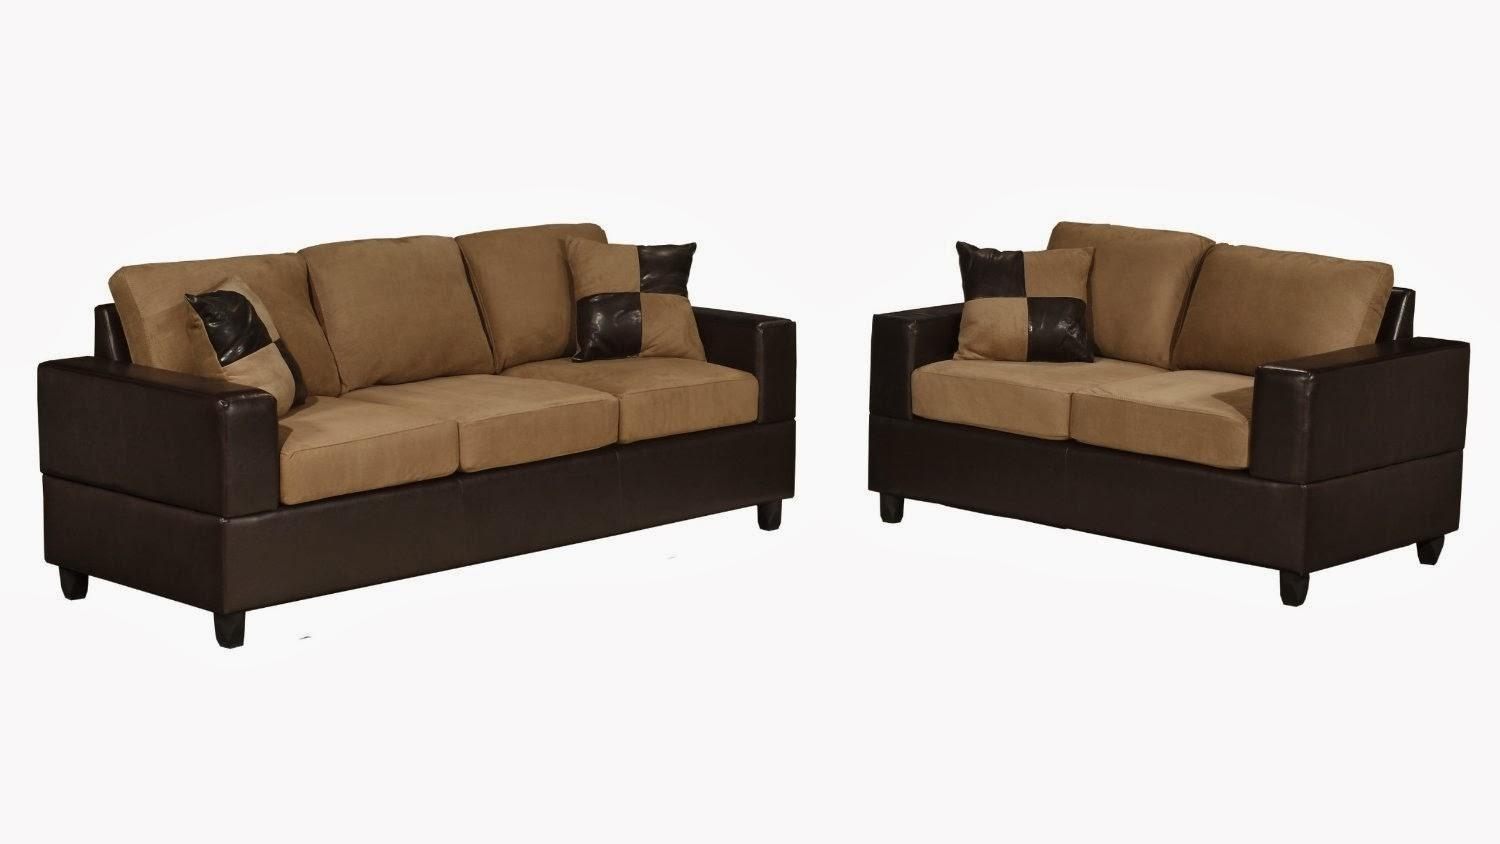 Tiny Sectional Sofa And Living Room Design Best Small Sectional Pertaining To Tiny Sofas (View 12 of 20)